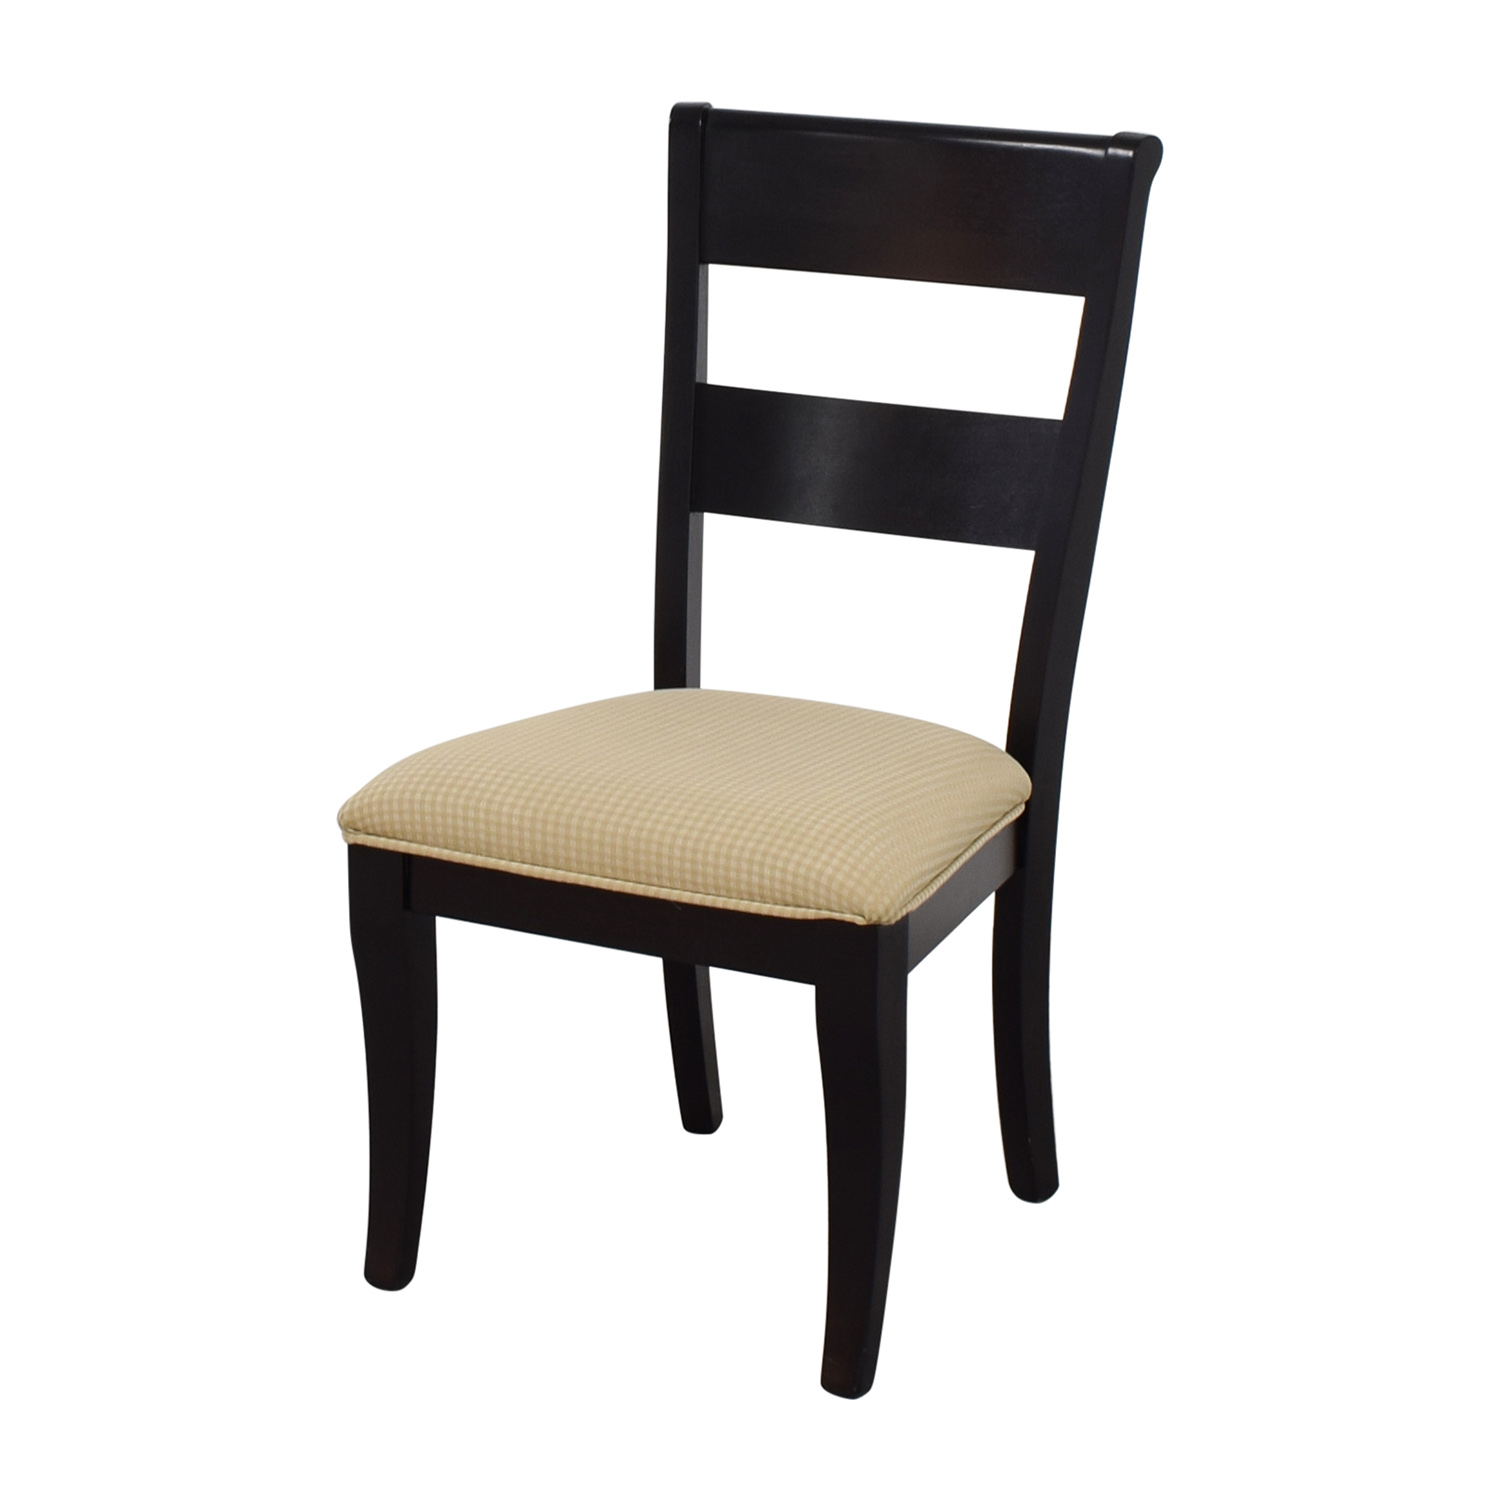 Raymour And Flanigan Chairs: Raymour & Flanigan Raymour & Flanigan Black